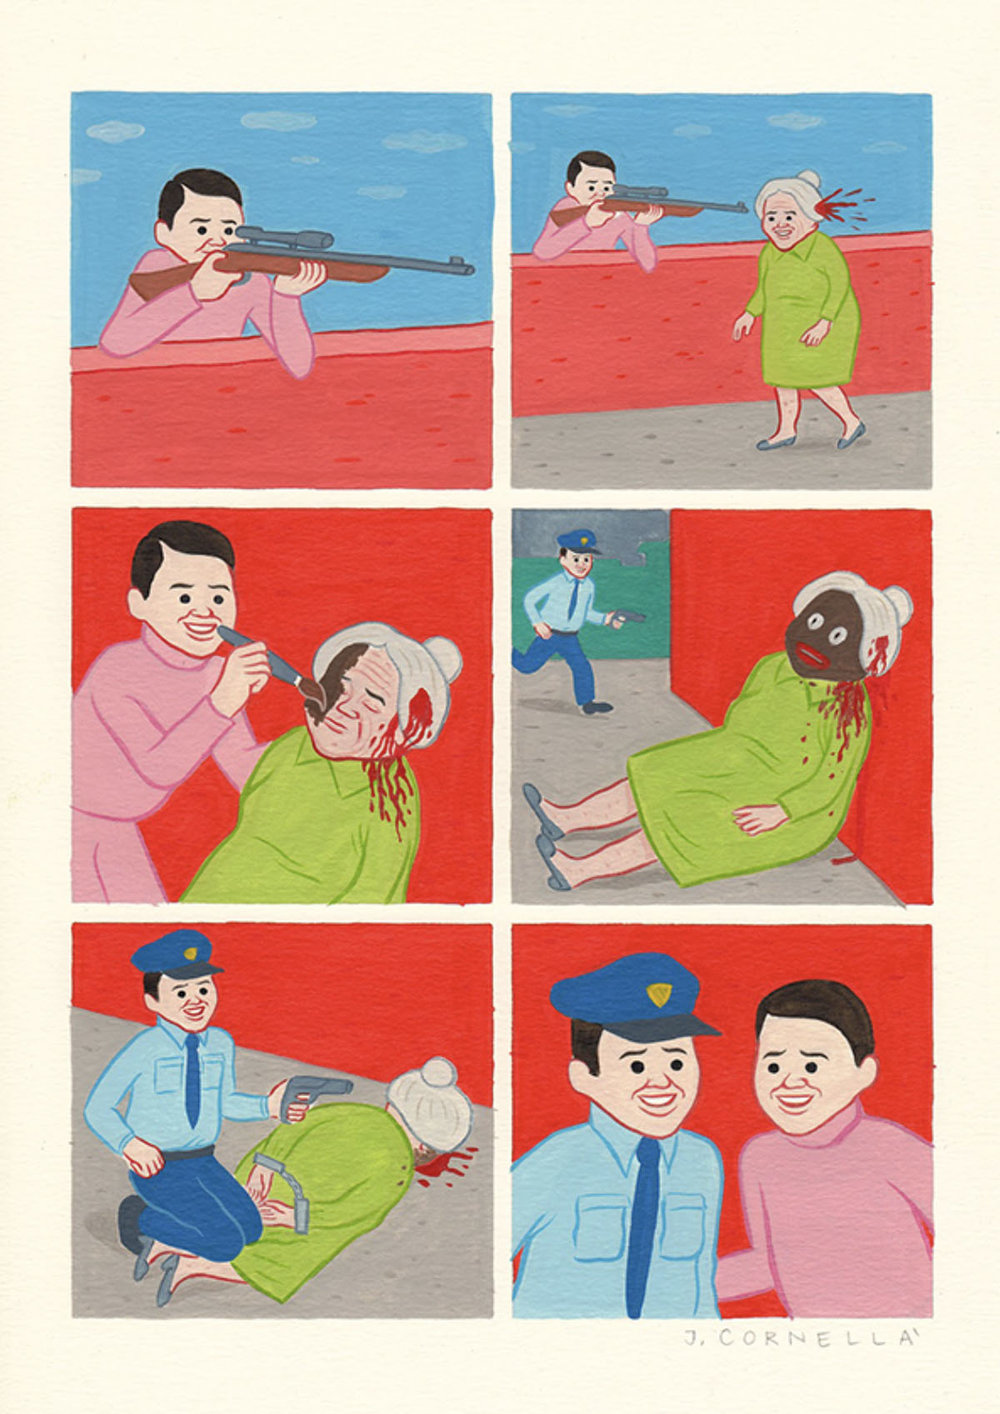 joan_cornella_exhibition_06.jpg